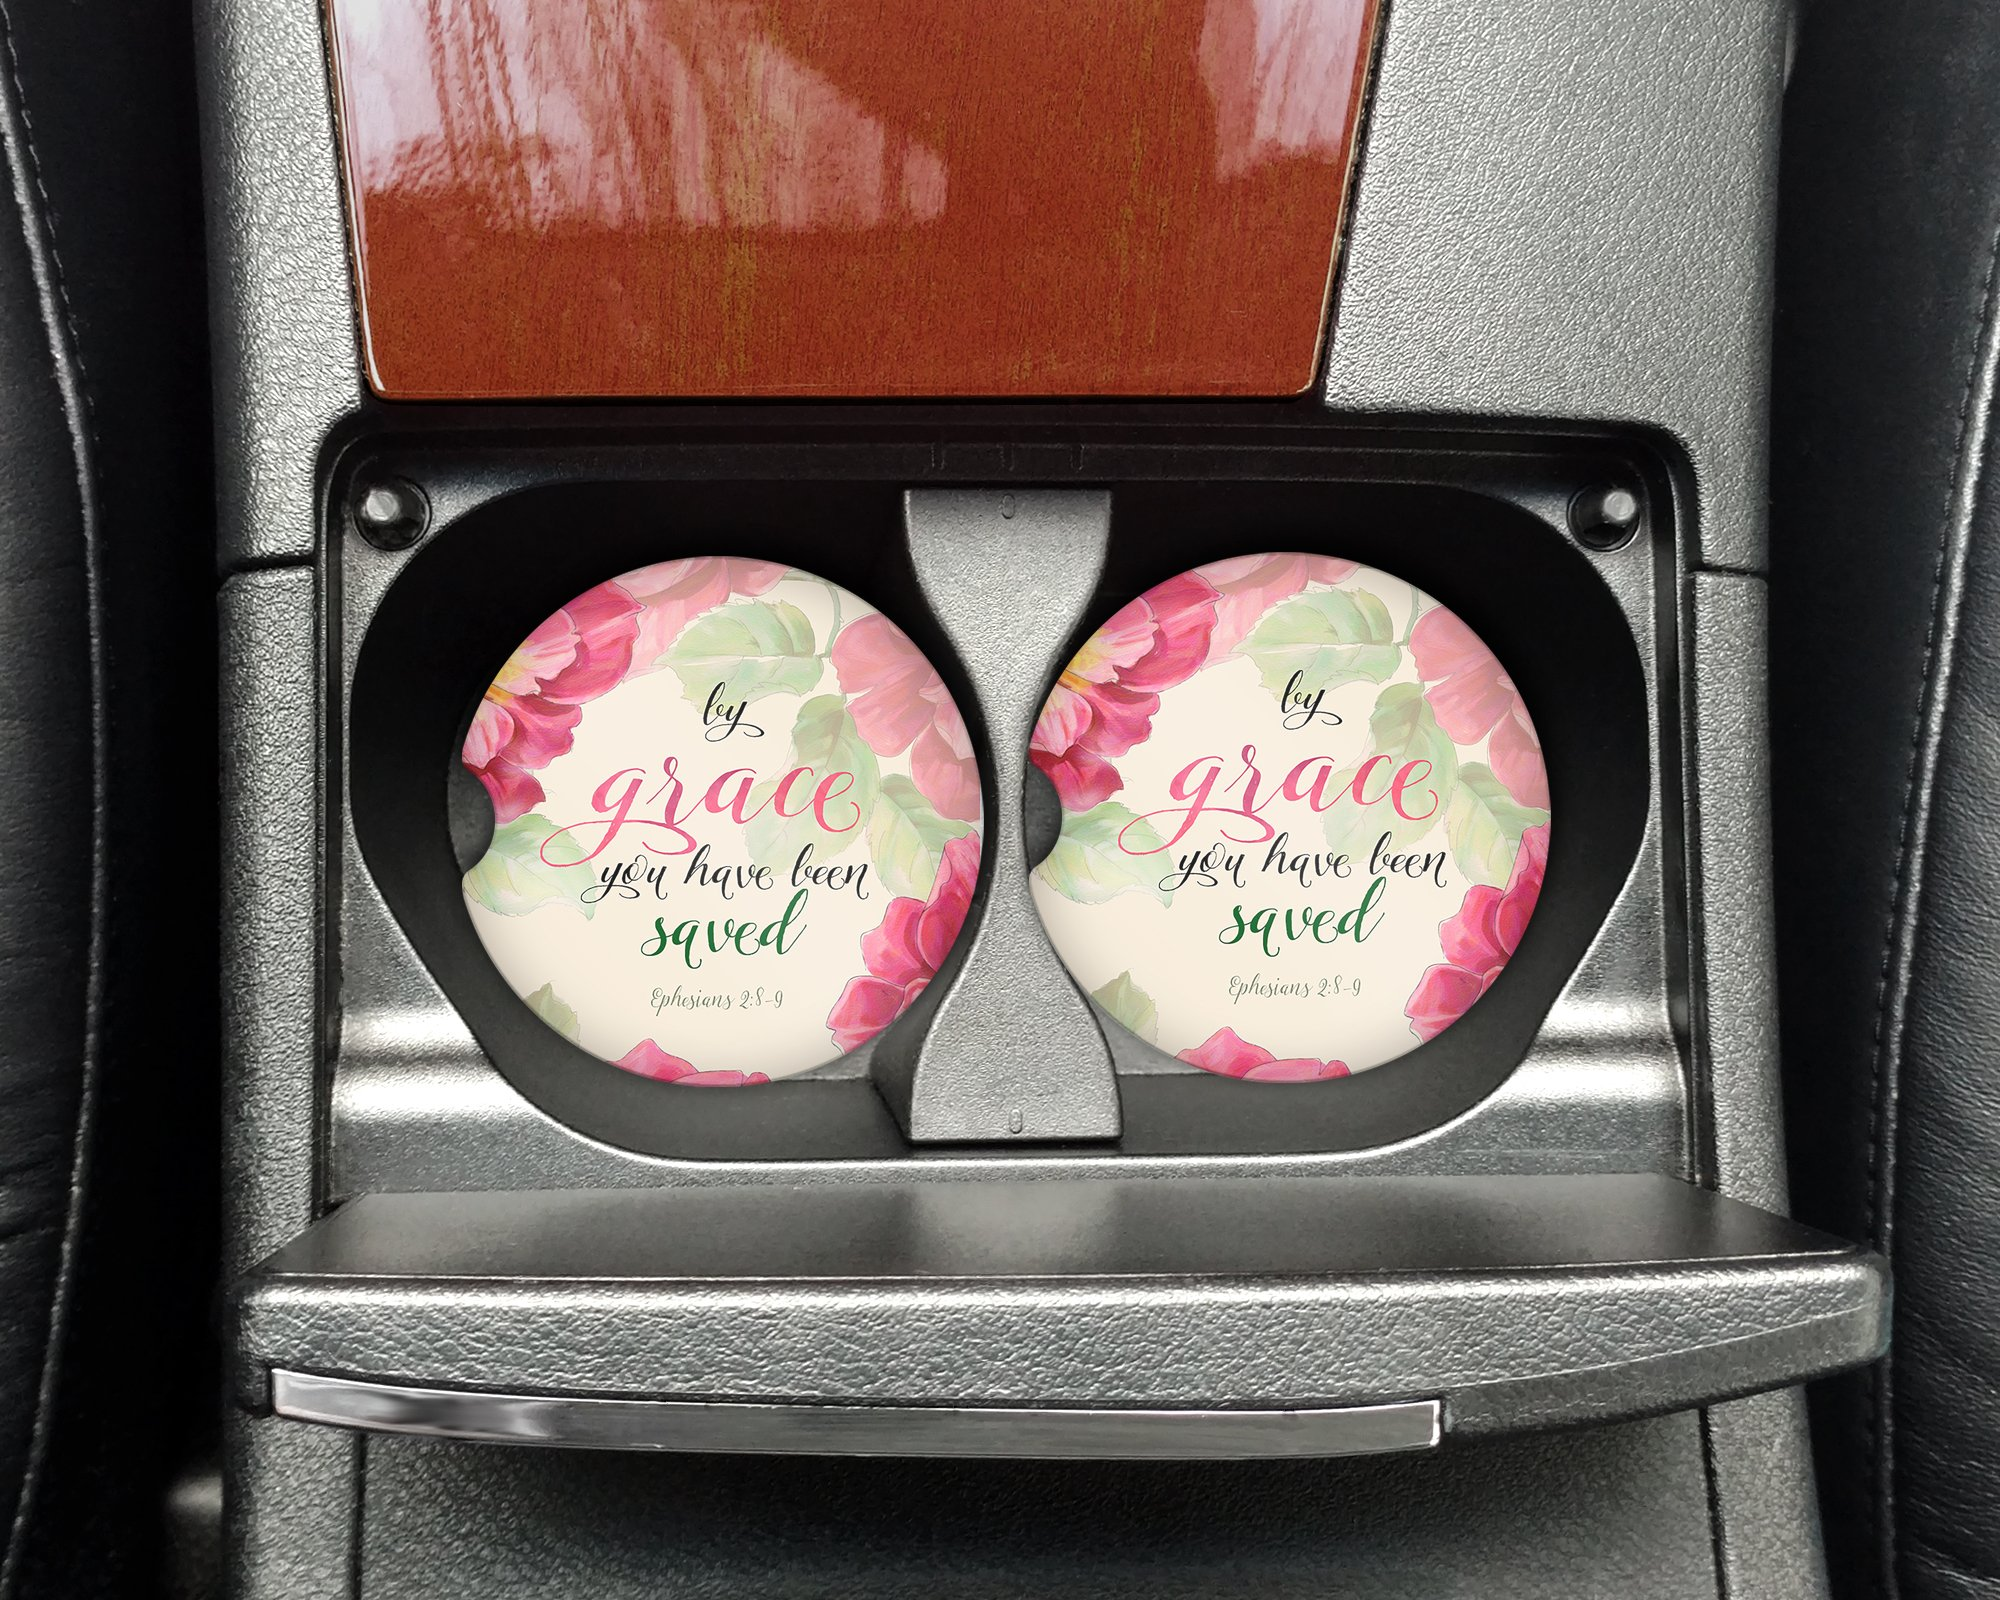 Bible quote - By Grace you have been saved - Ephesians 2:8-9 - Car coasters - Sandstone auto cup holder coasters - Christian Gifts for women